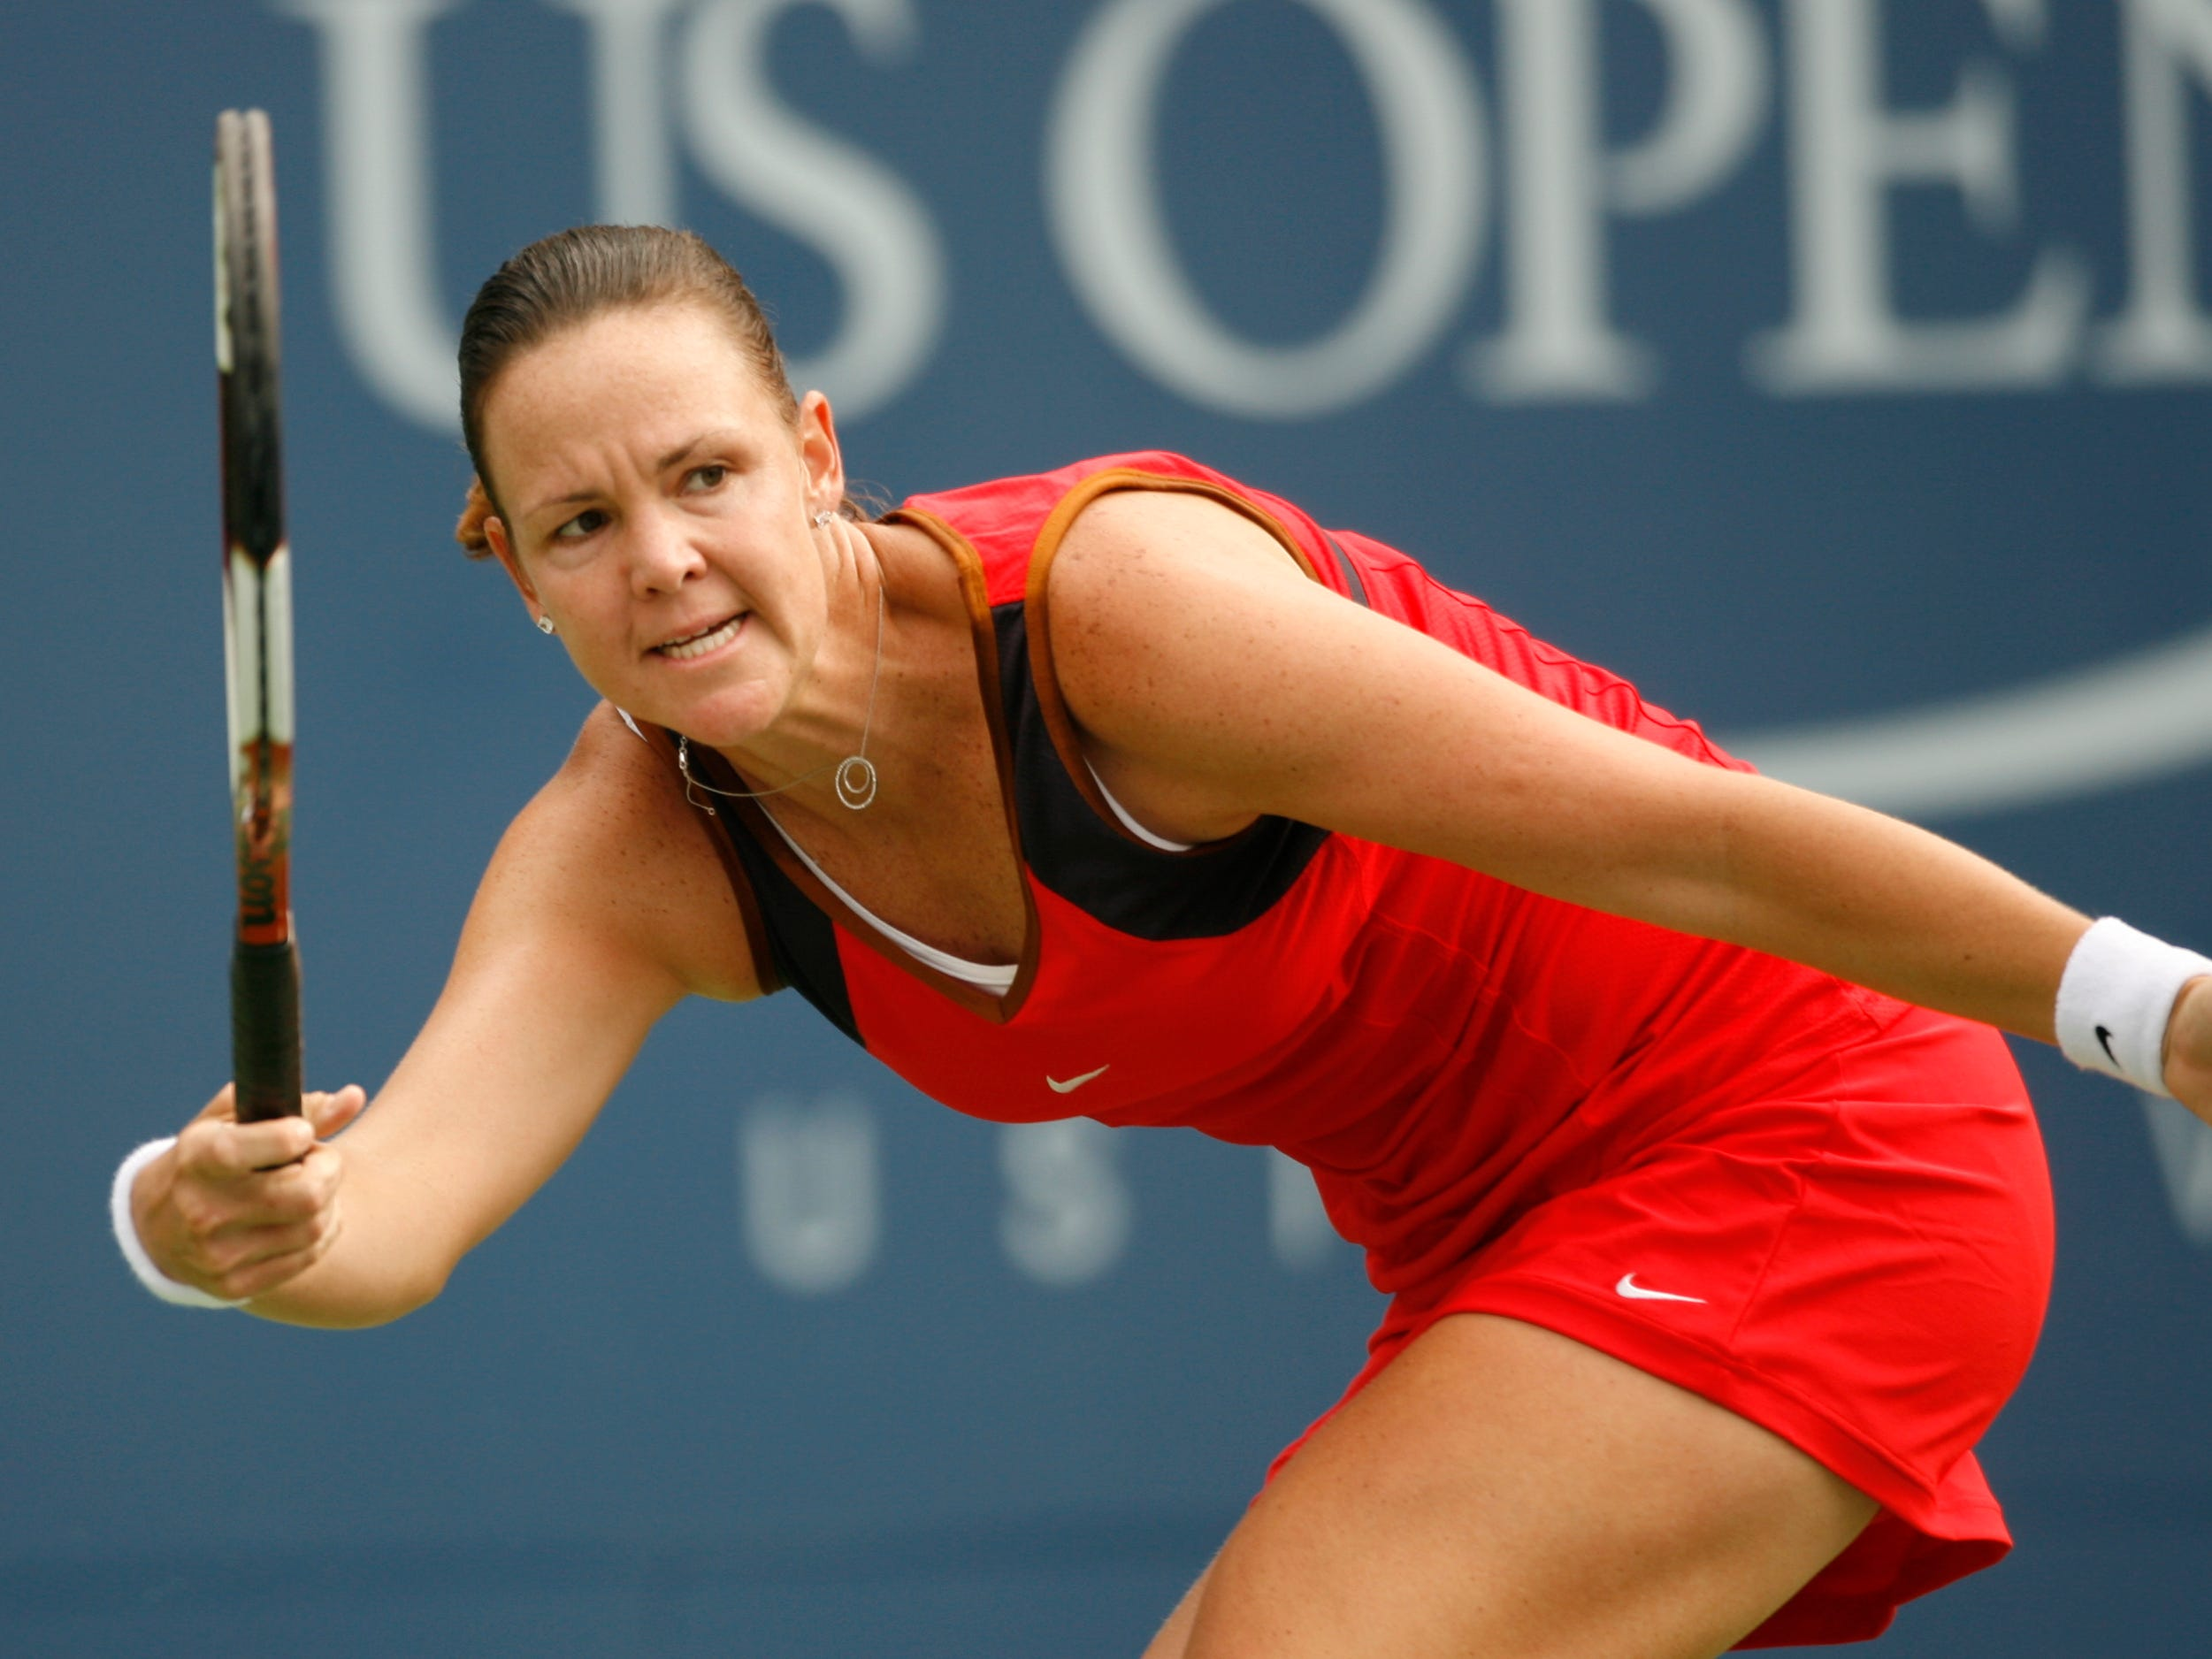 Lindsay Davenport (4-10). The three-time major champion retired in 2010.